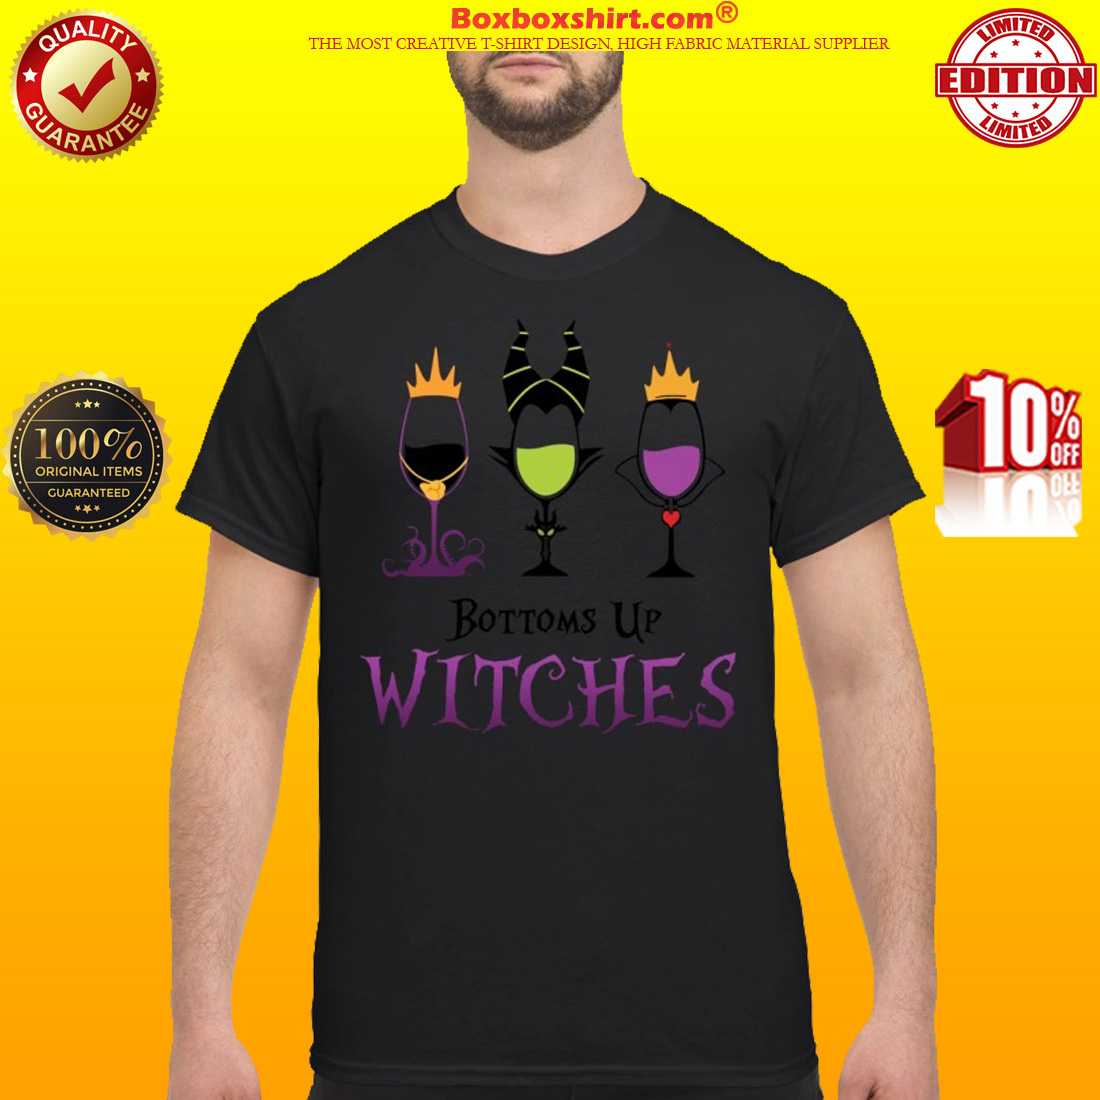 Bottoms up witches Hocus Pocus classic shirt